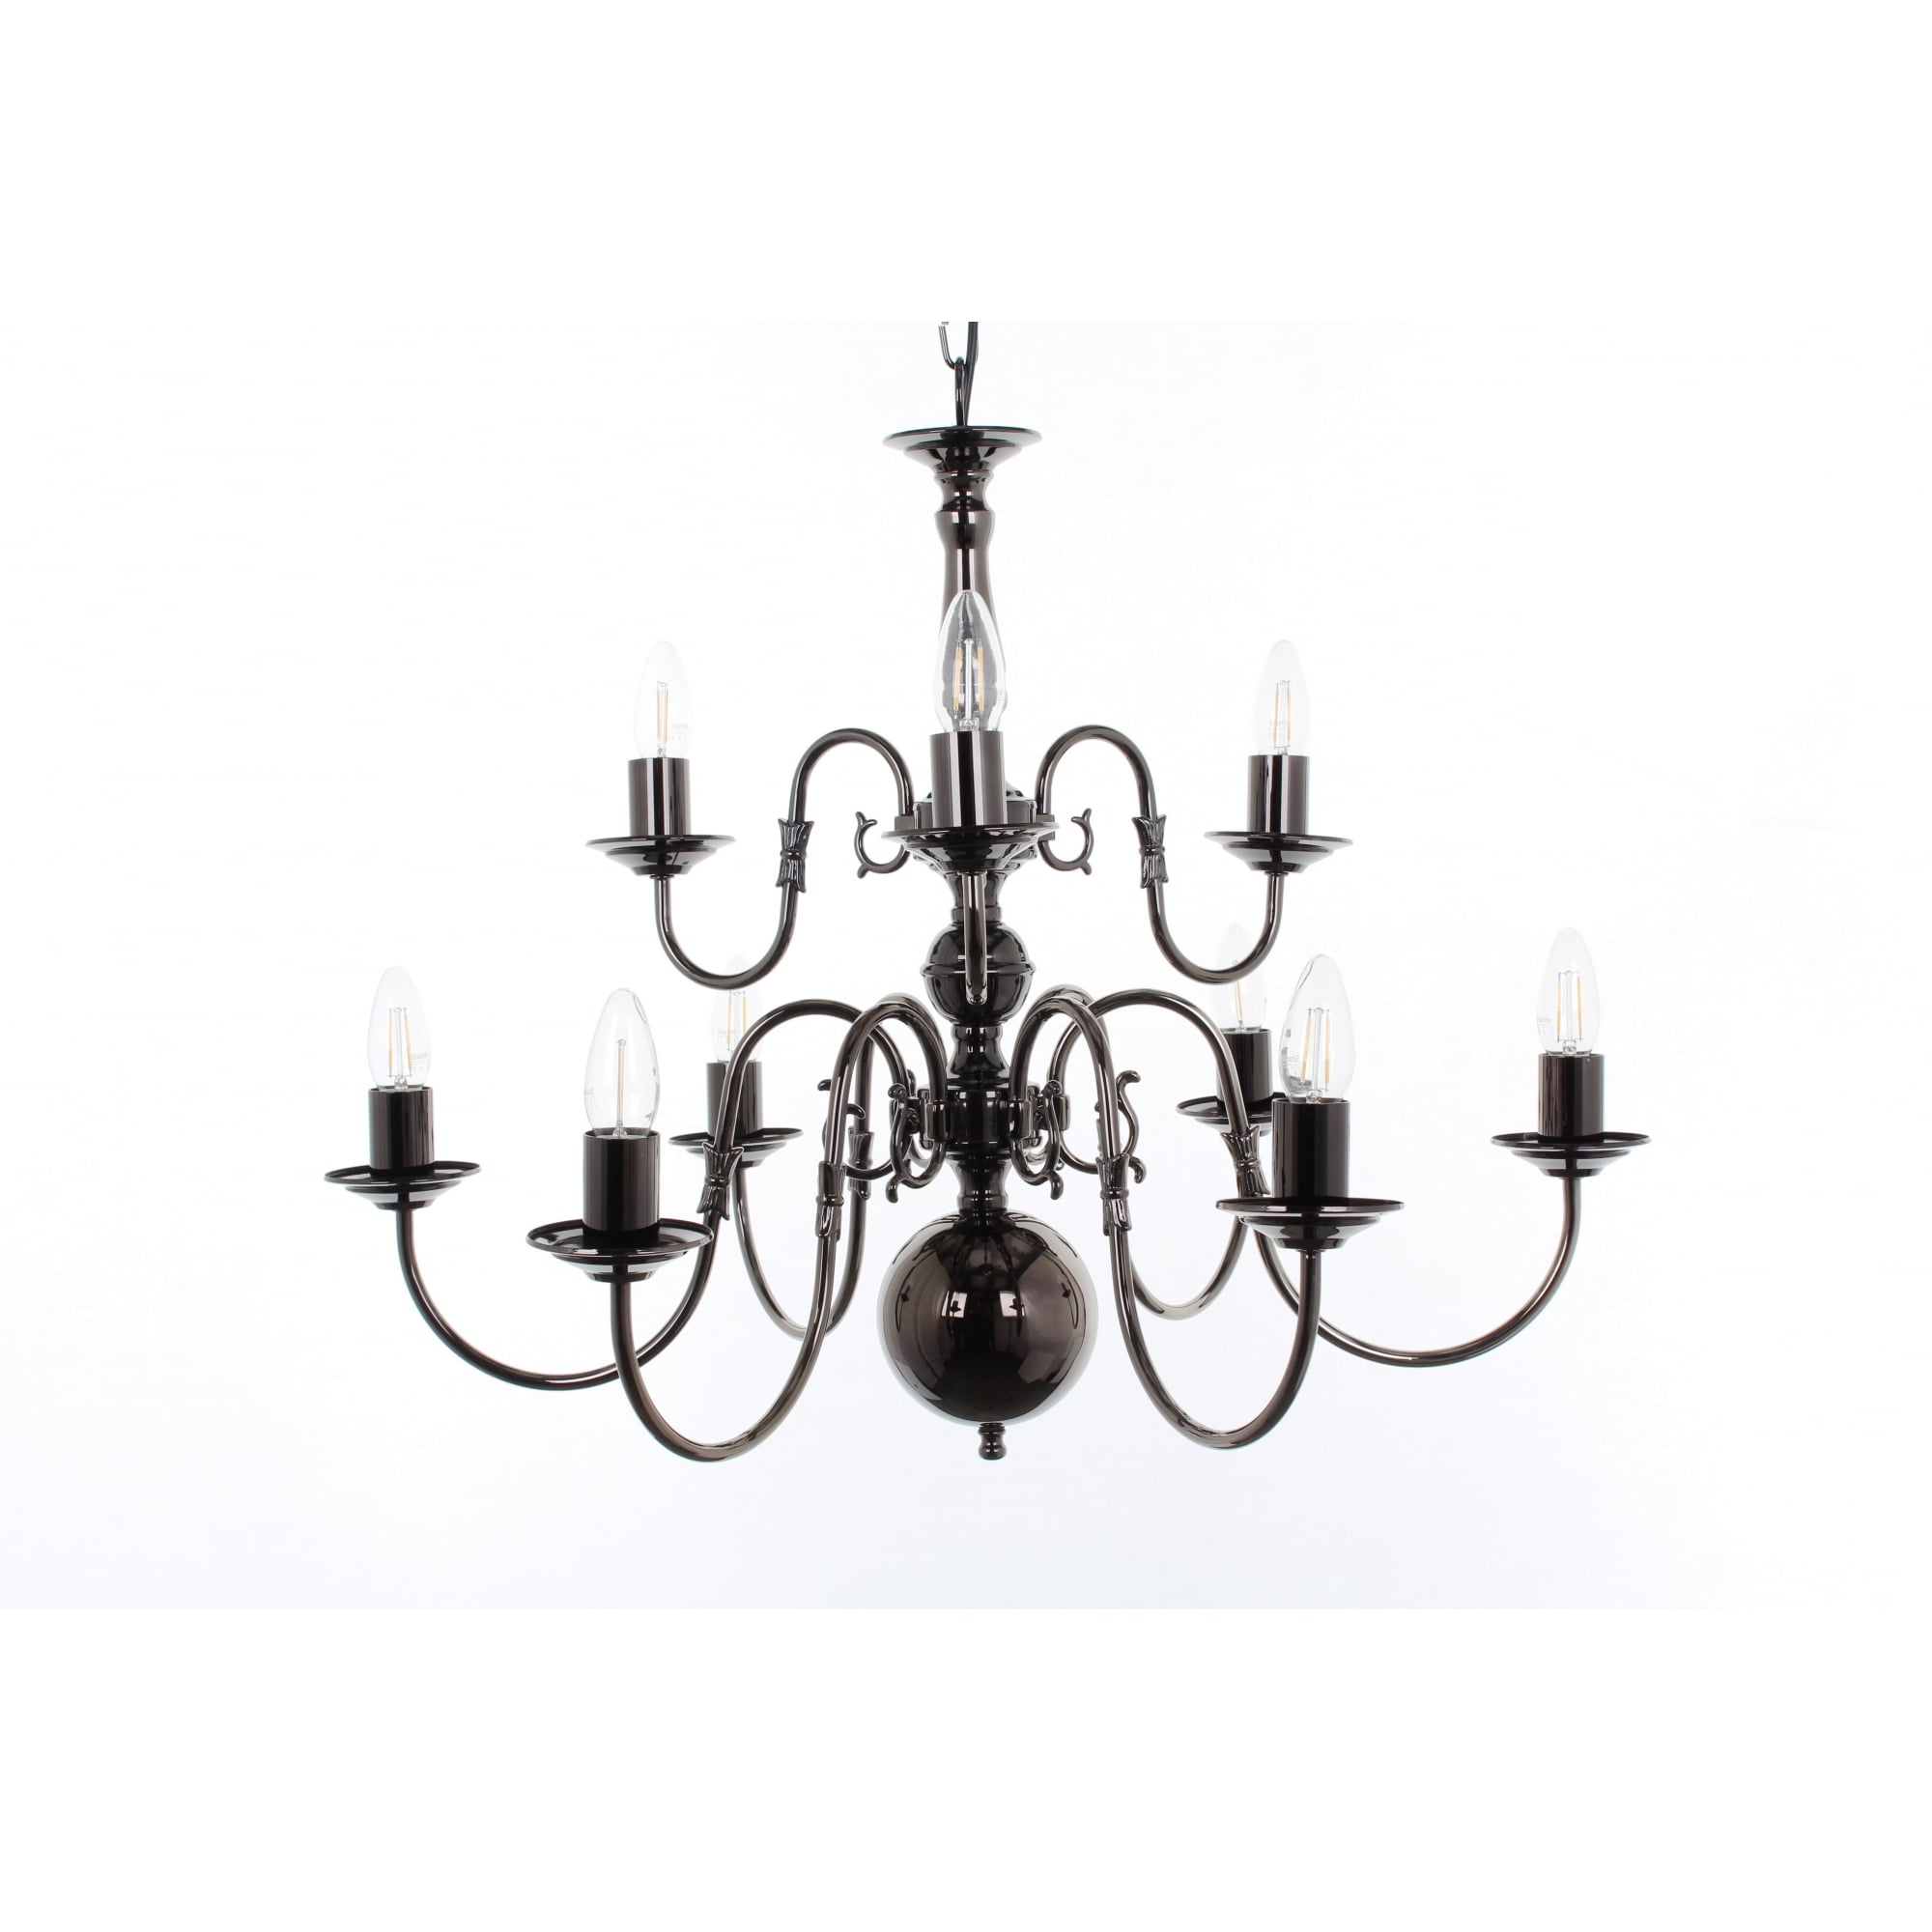 Impex Lighting Flemish 9 Light Chandelier In A Choice Of Finishes Bf00350 6 3 Lighting From The Home Lighting Centre Uk